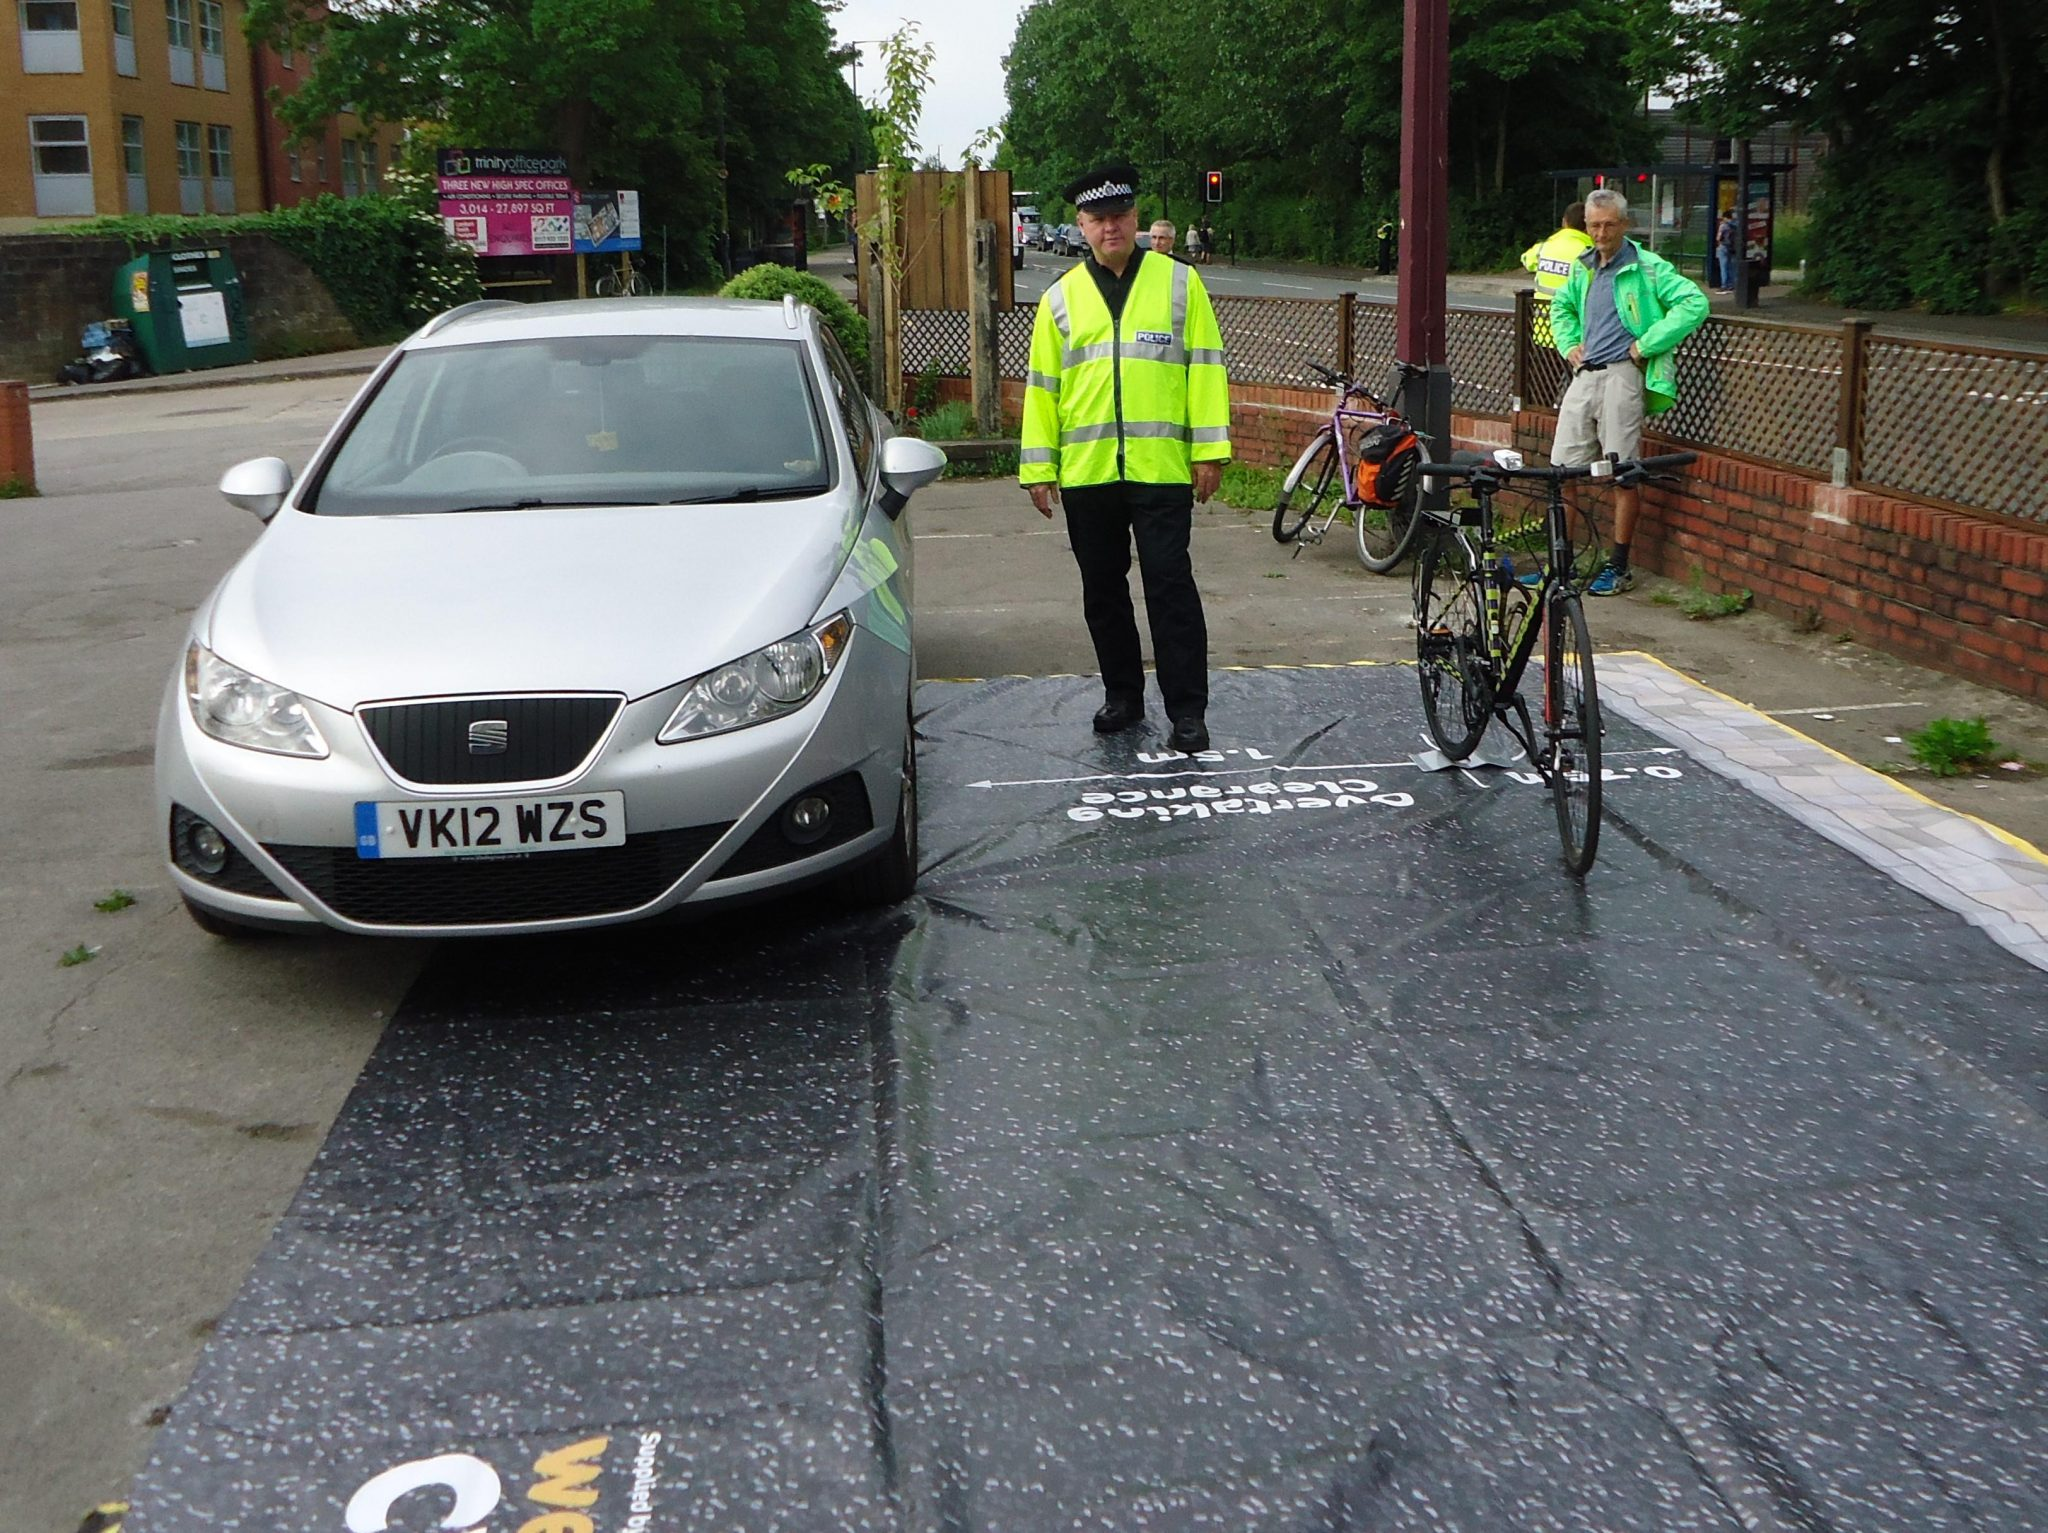 News on Road Justice from meeting with police, June 2017